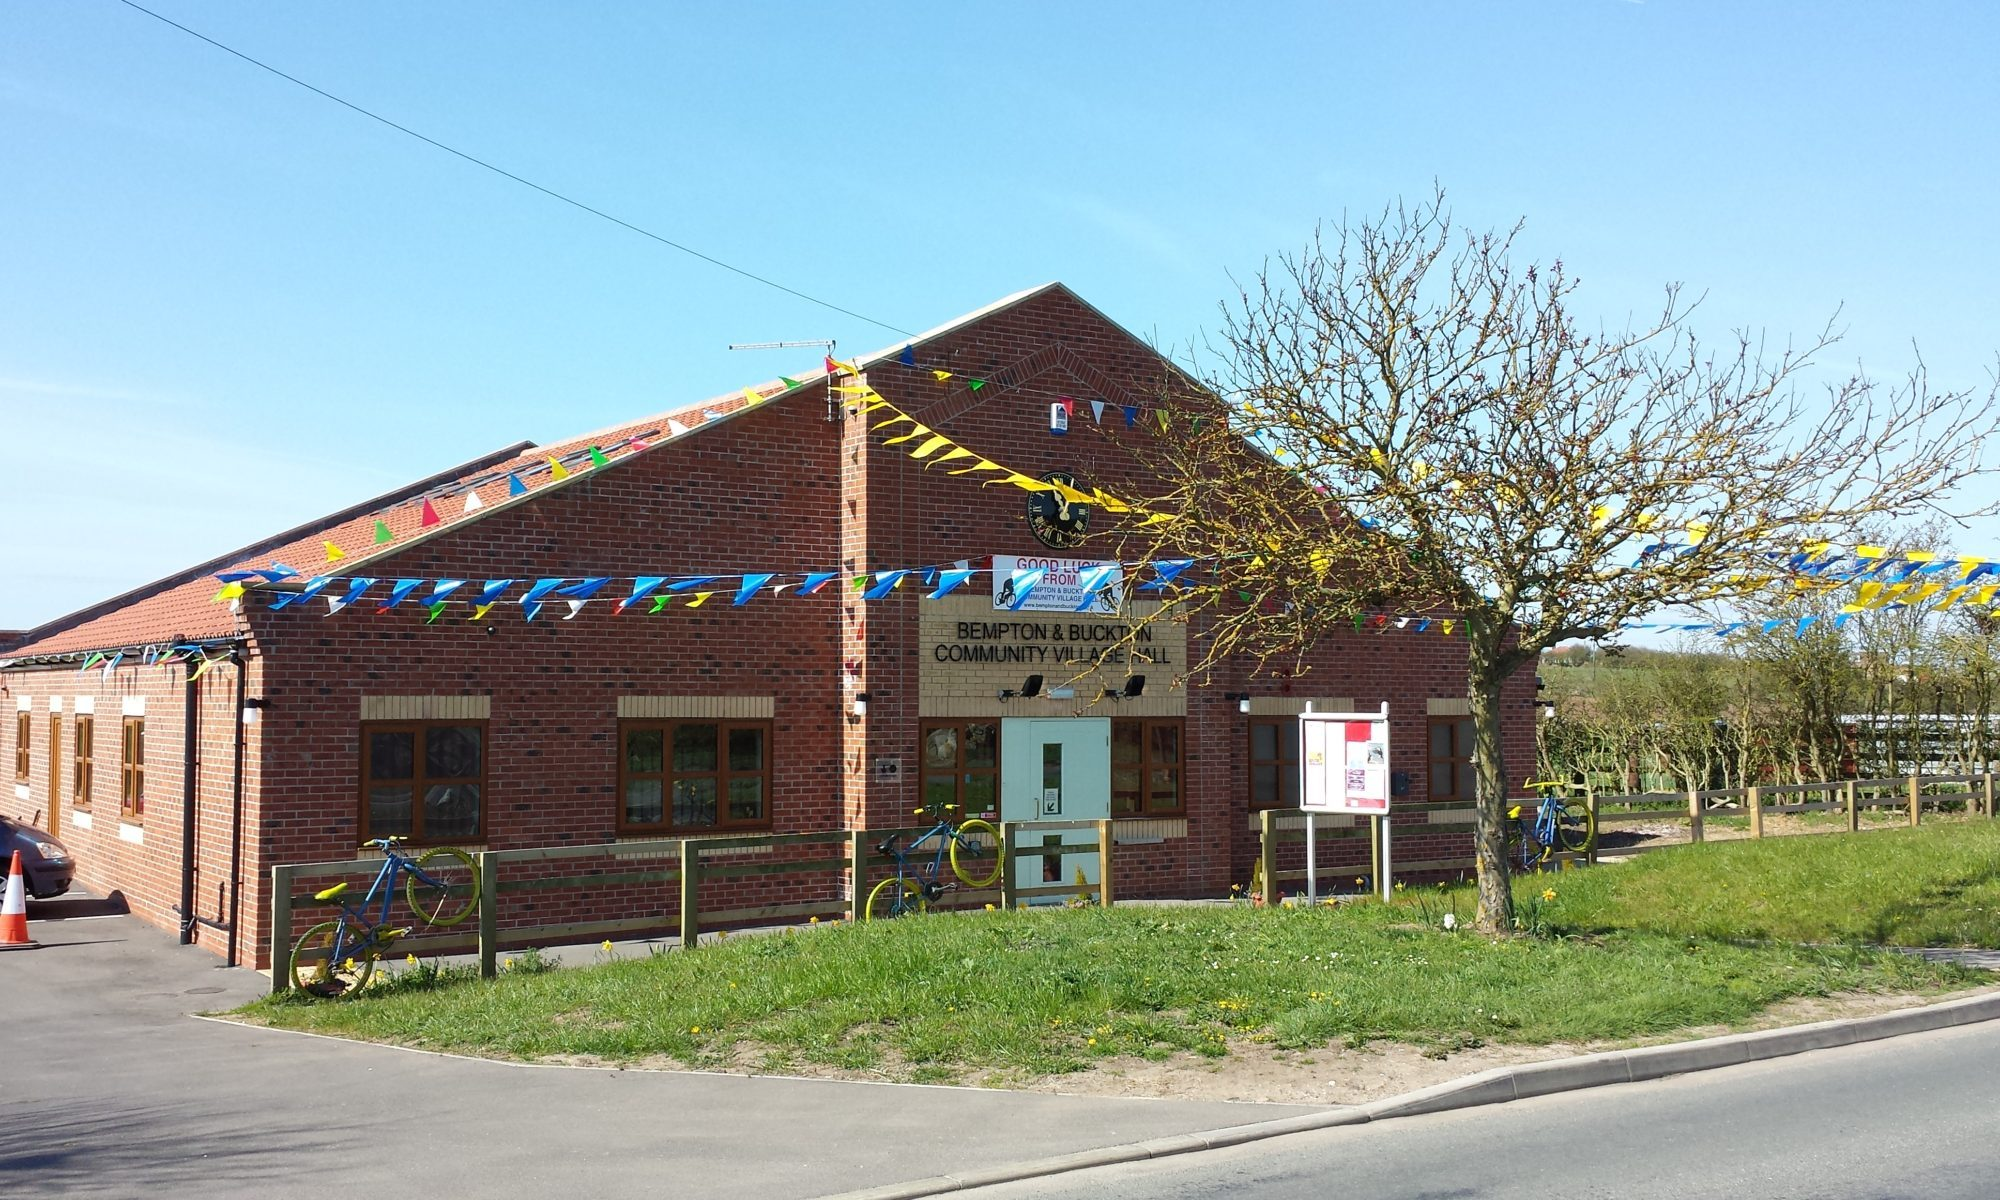 Bempton & Buckton Community Village Hall